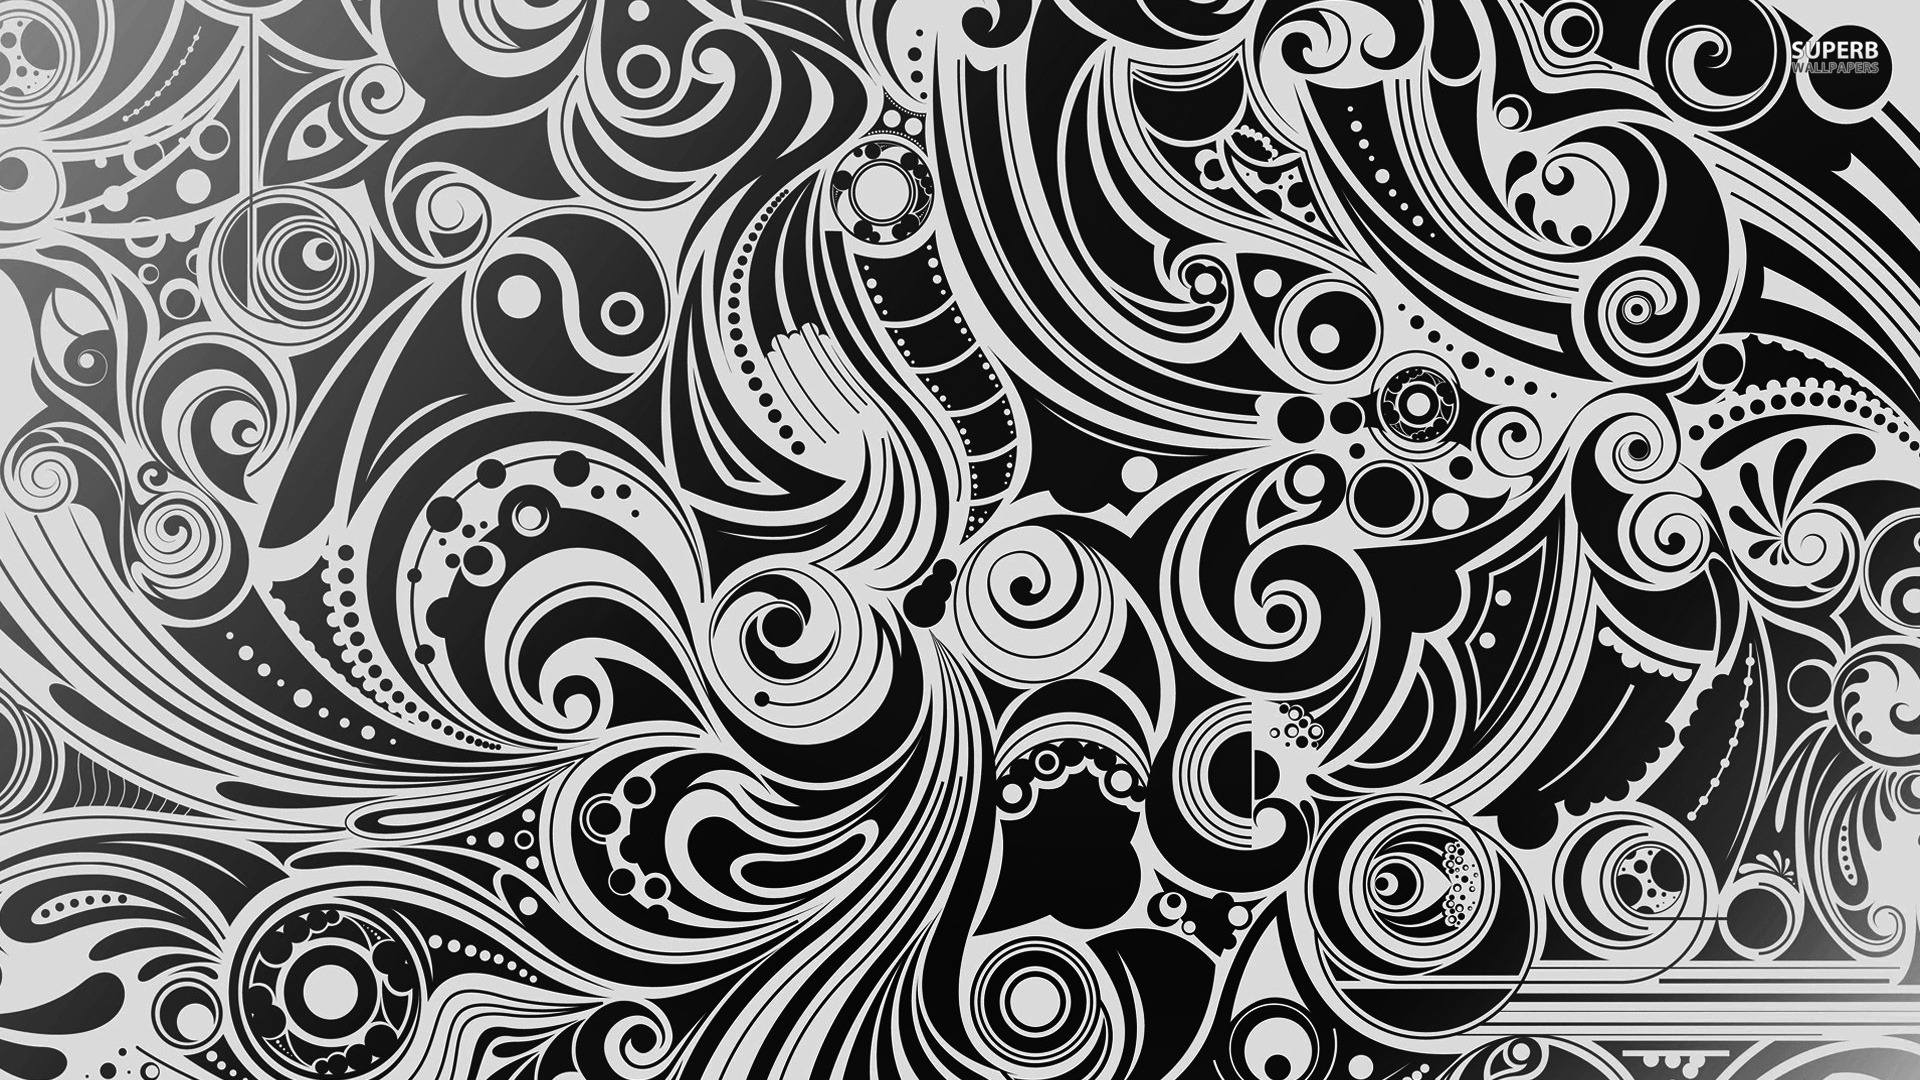 Abstract Art Black And White - wallpaper